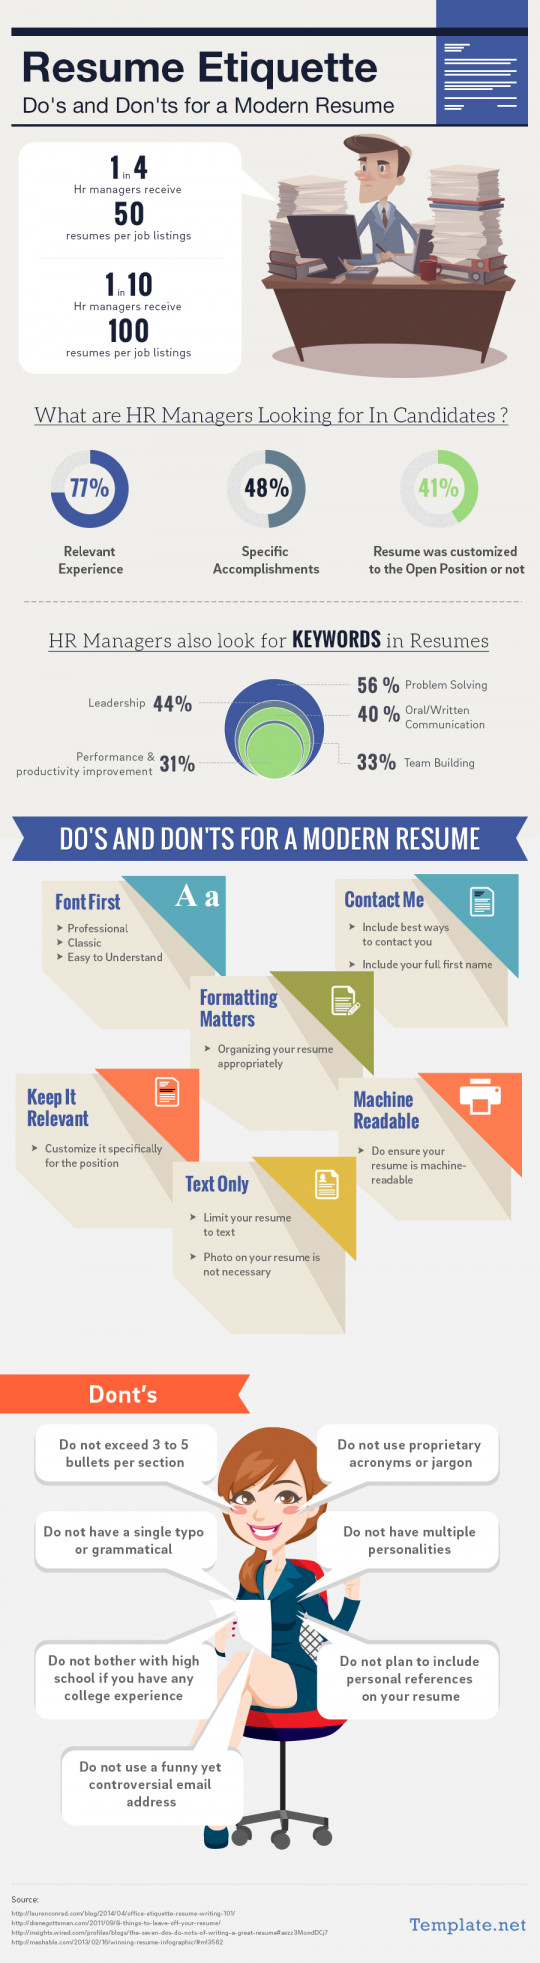 Resume Etiquette Do's & Don'ts for a Resume Template